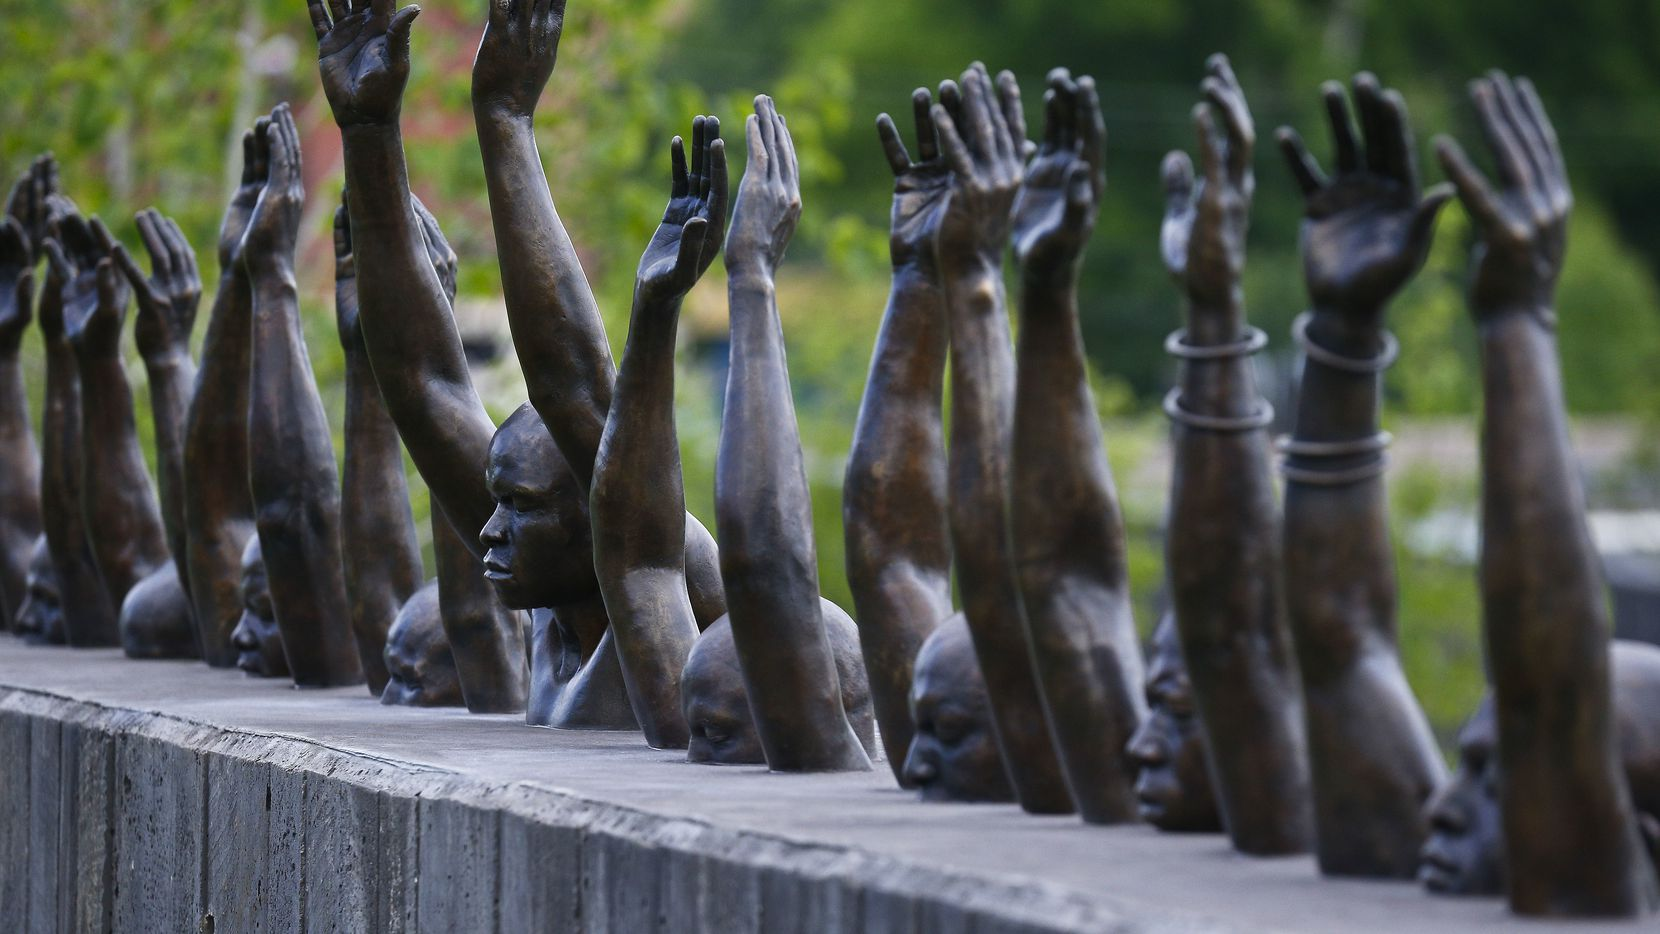 """The bronze statue """"Raise Up"""" is part of the display at the National Memorial for Peace and Justice, a memorial in Montgomery, Ala., honoring thousands of people killed in lynchings."""